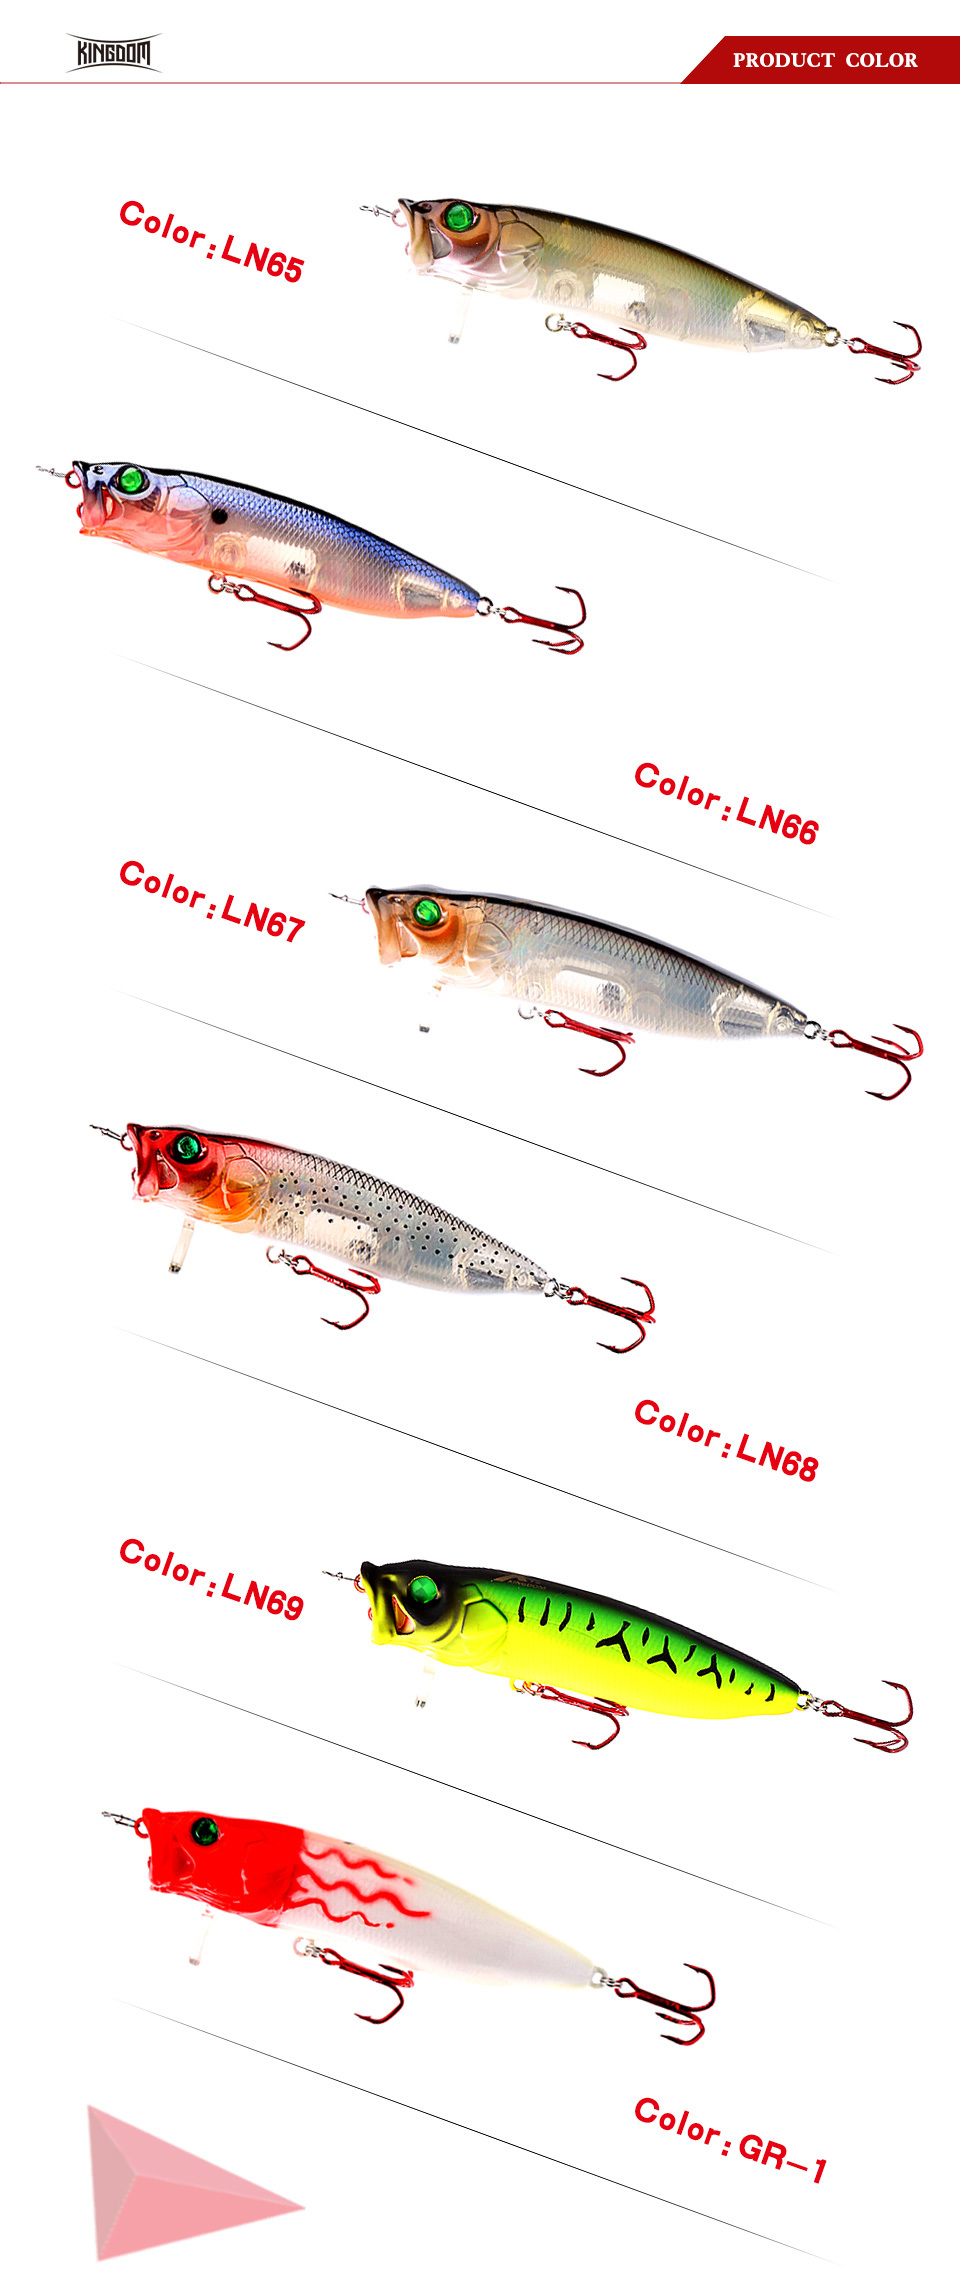 Kingdom Fishing Lures Hard Bait Topwater Popper Switchable Tongue Plate 70mm 9.5g 90mm 16g 110mm 33g Artificial Baits Model 5367 (6)